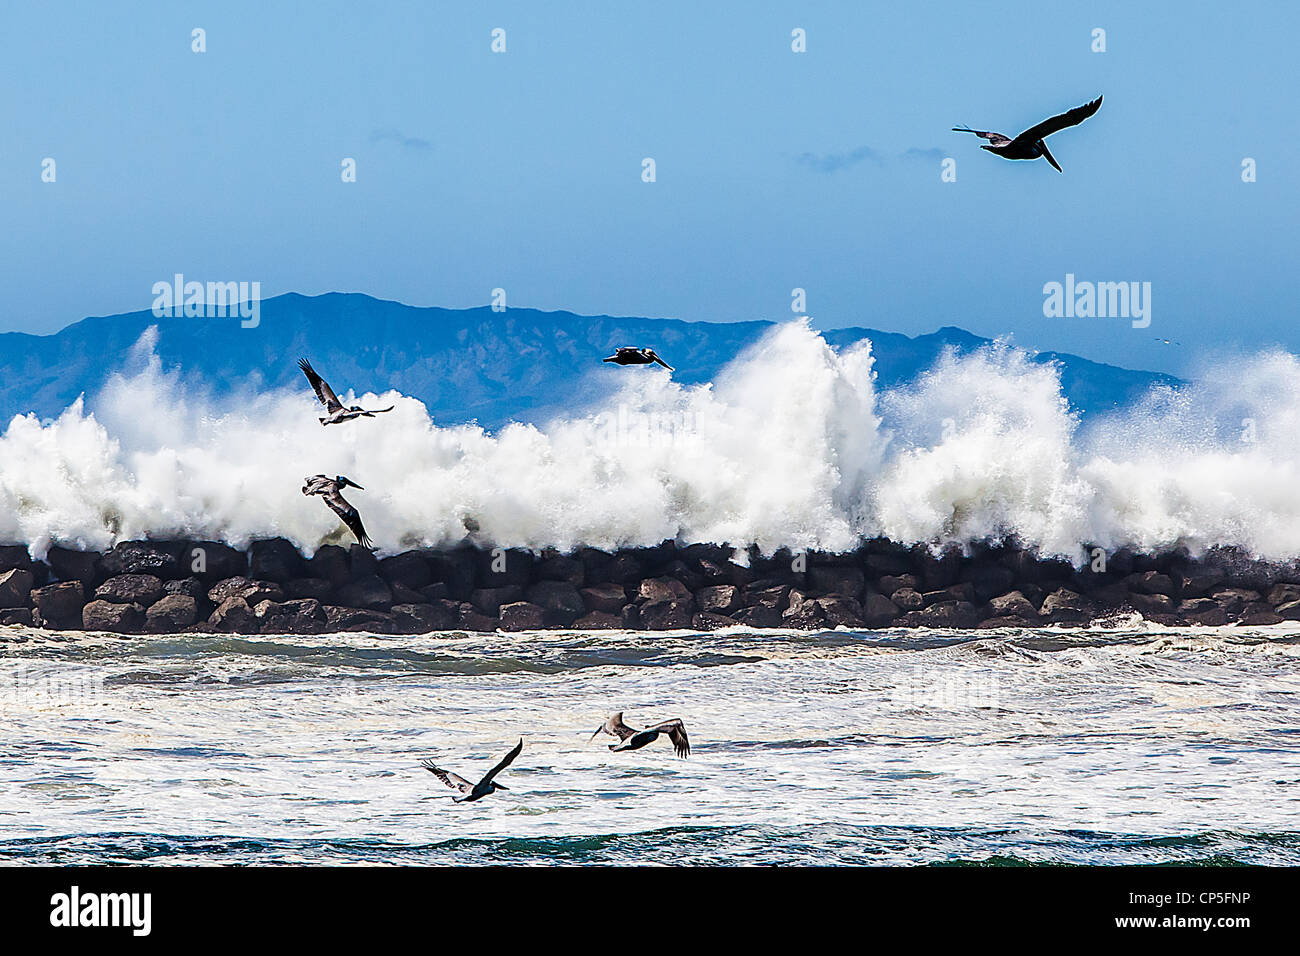 high-wind-and-waves-crashing-on-the-breakwater-and-jetty-in-oxnard-CP5FNP.jpg